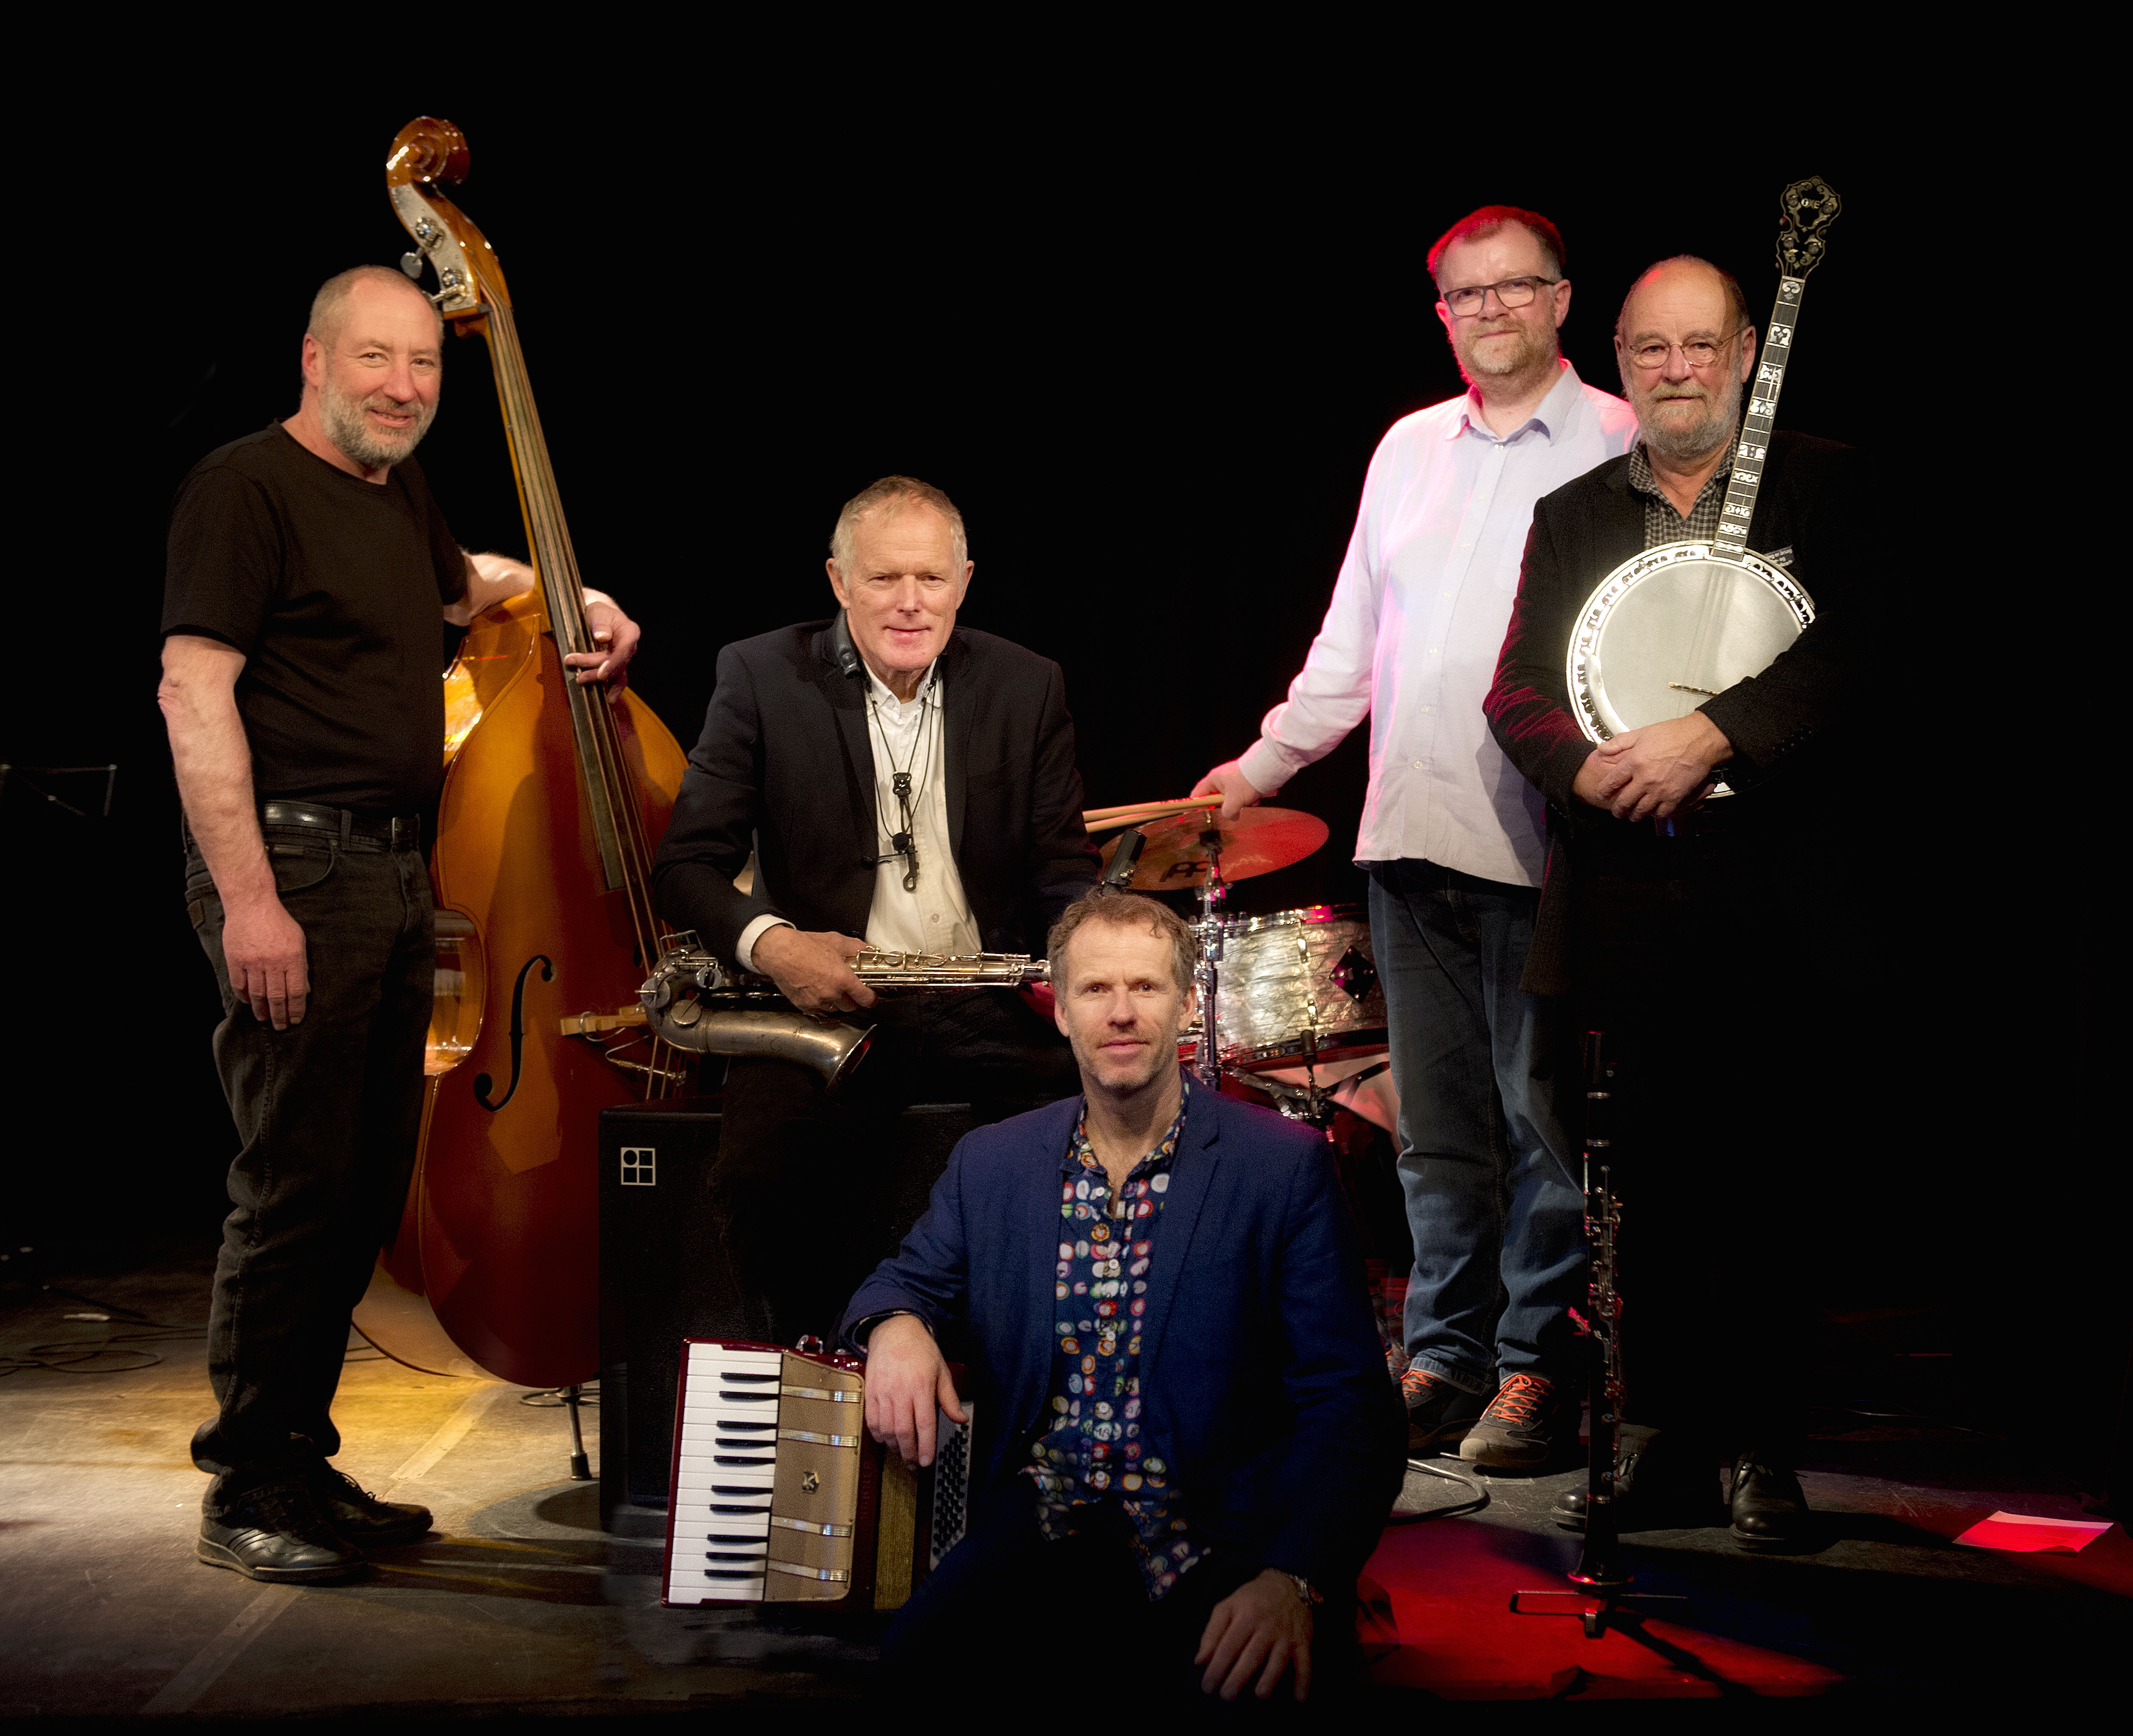 Red Hot Four featuring Jan Nielsen in Hadsten on 01/02/20